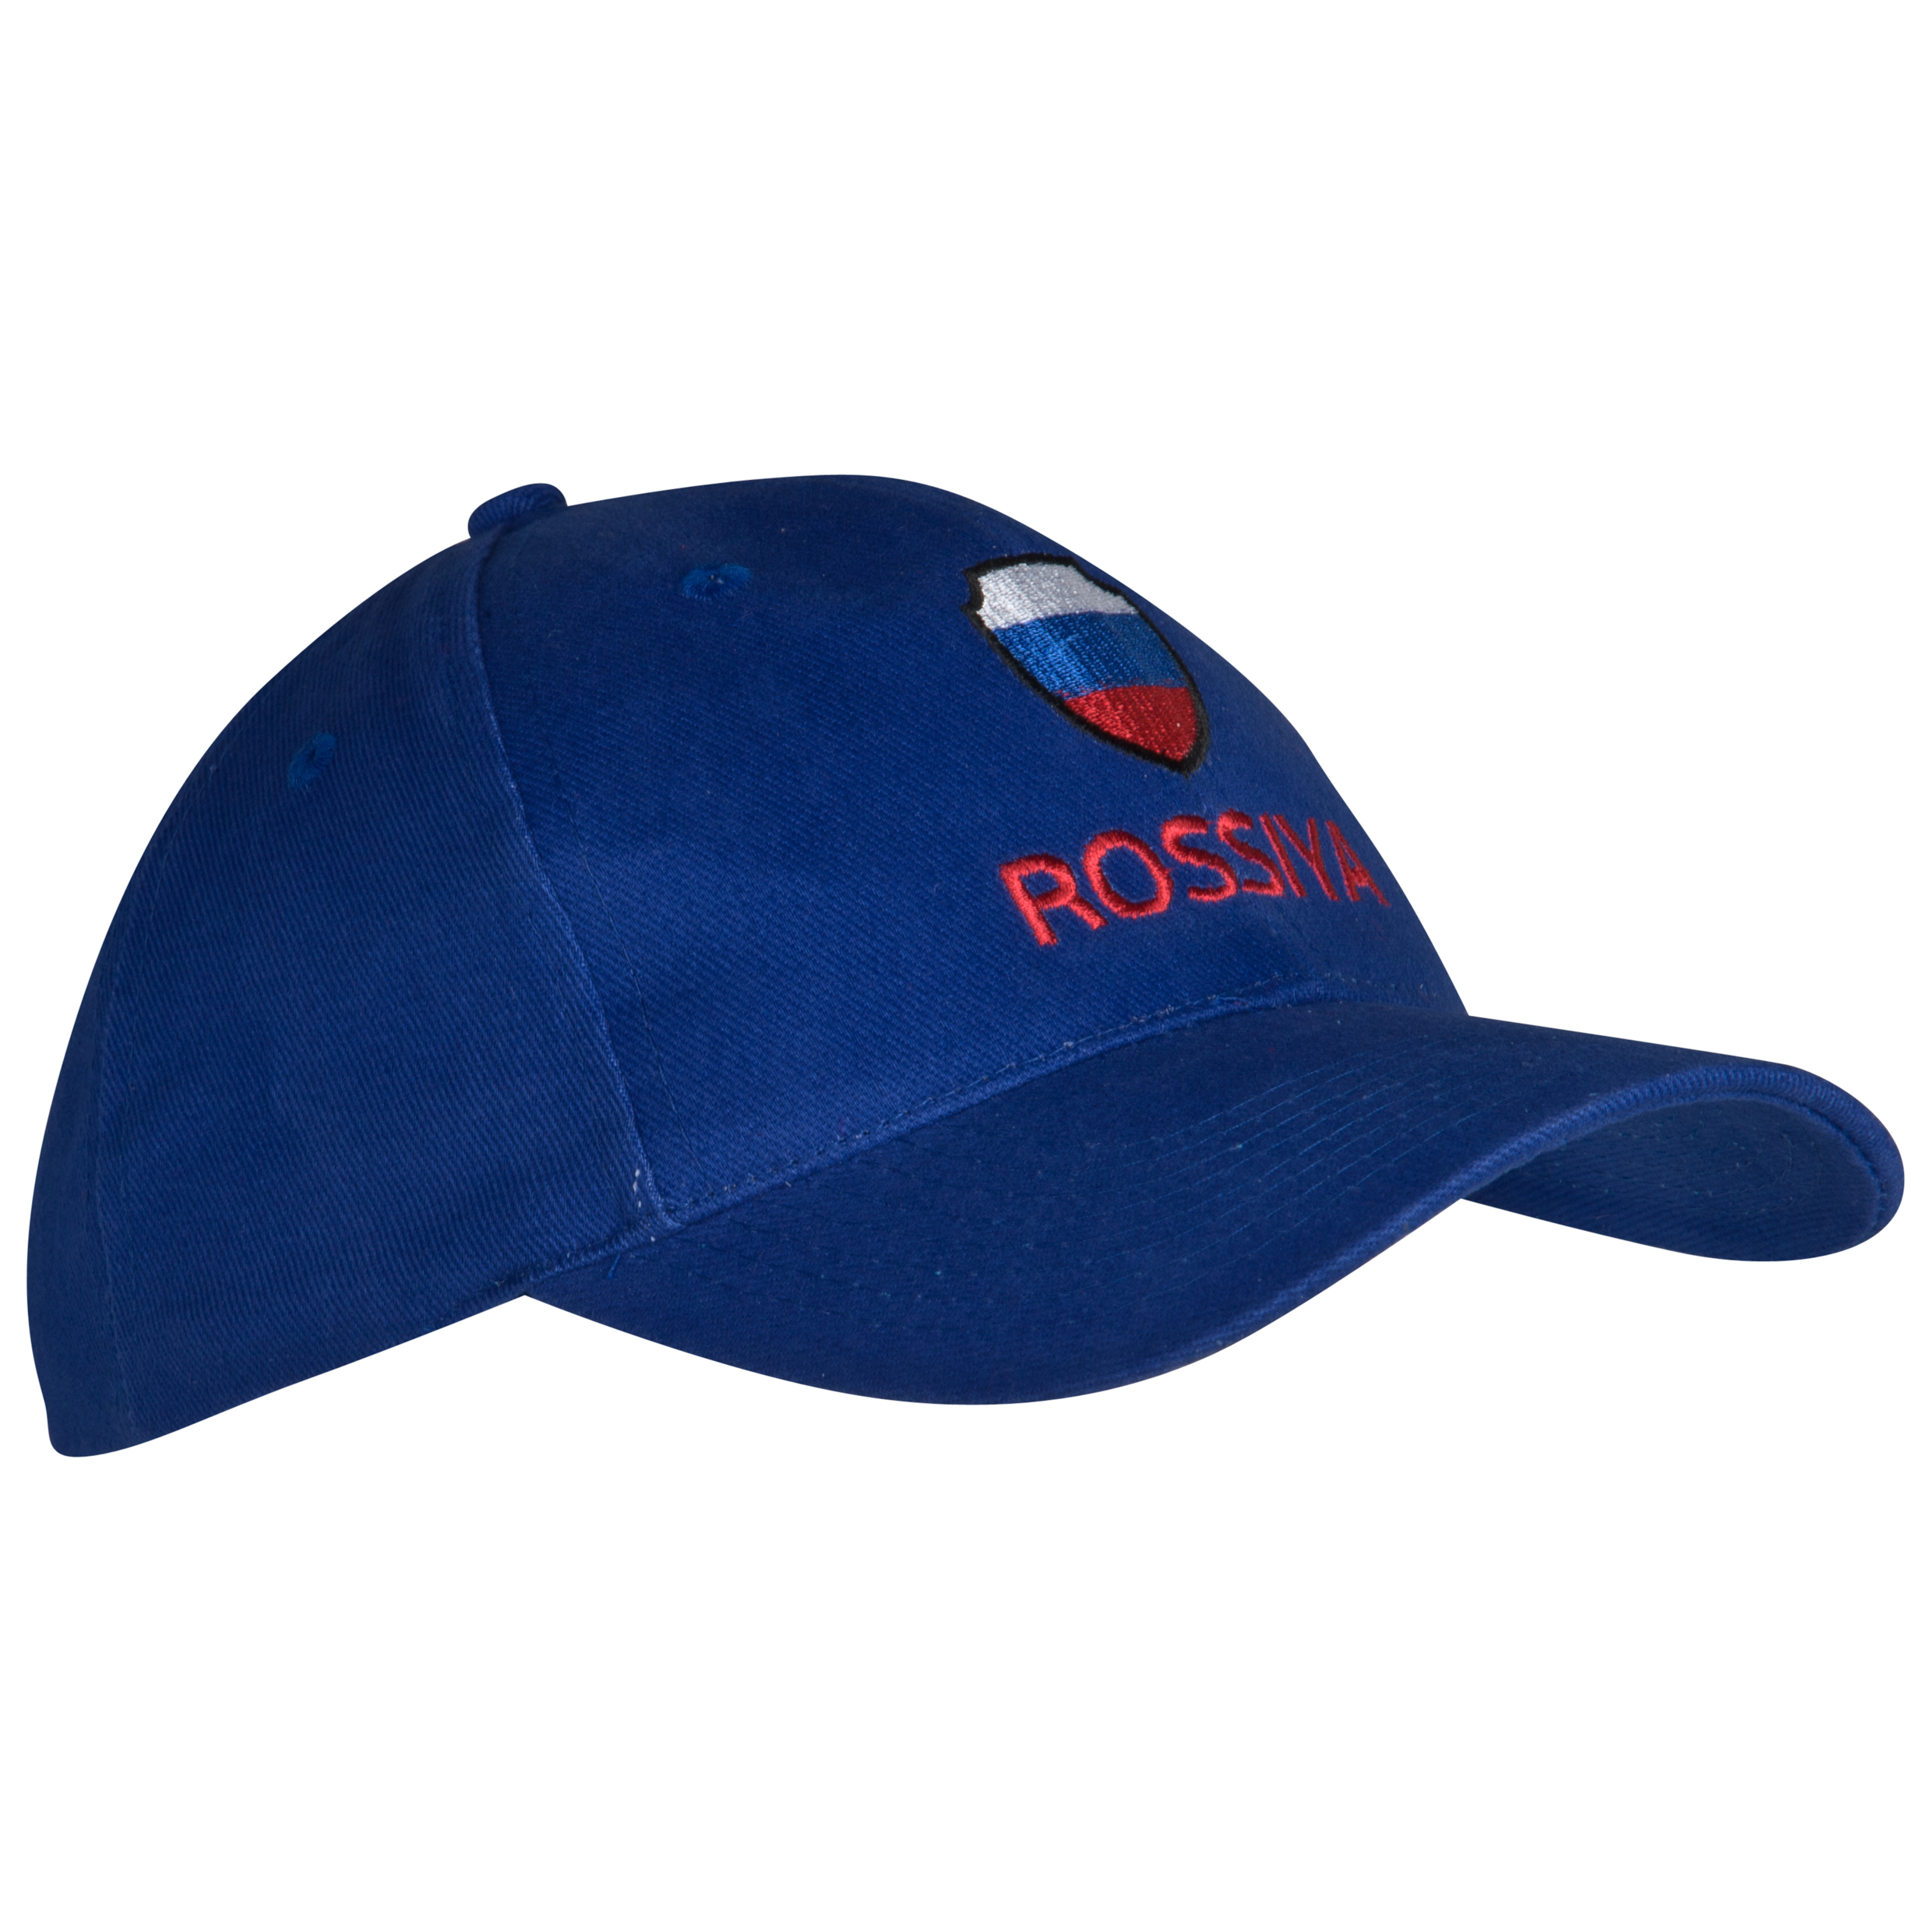 Euro 2012 Russia Cap - Blue/Red/White